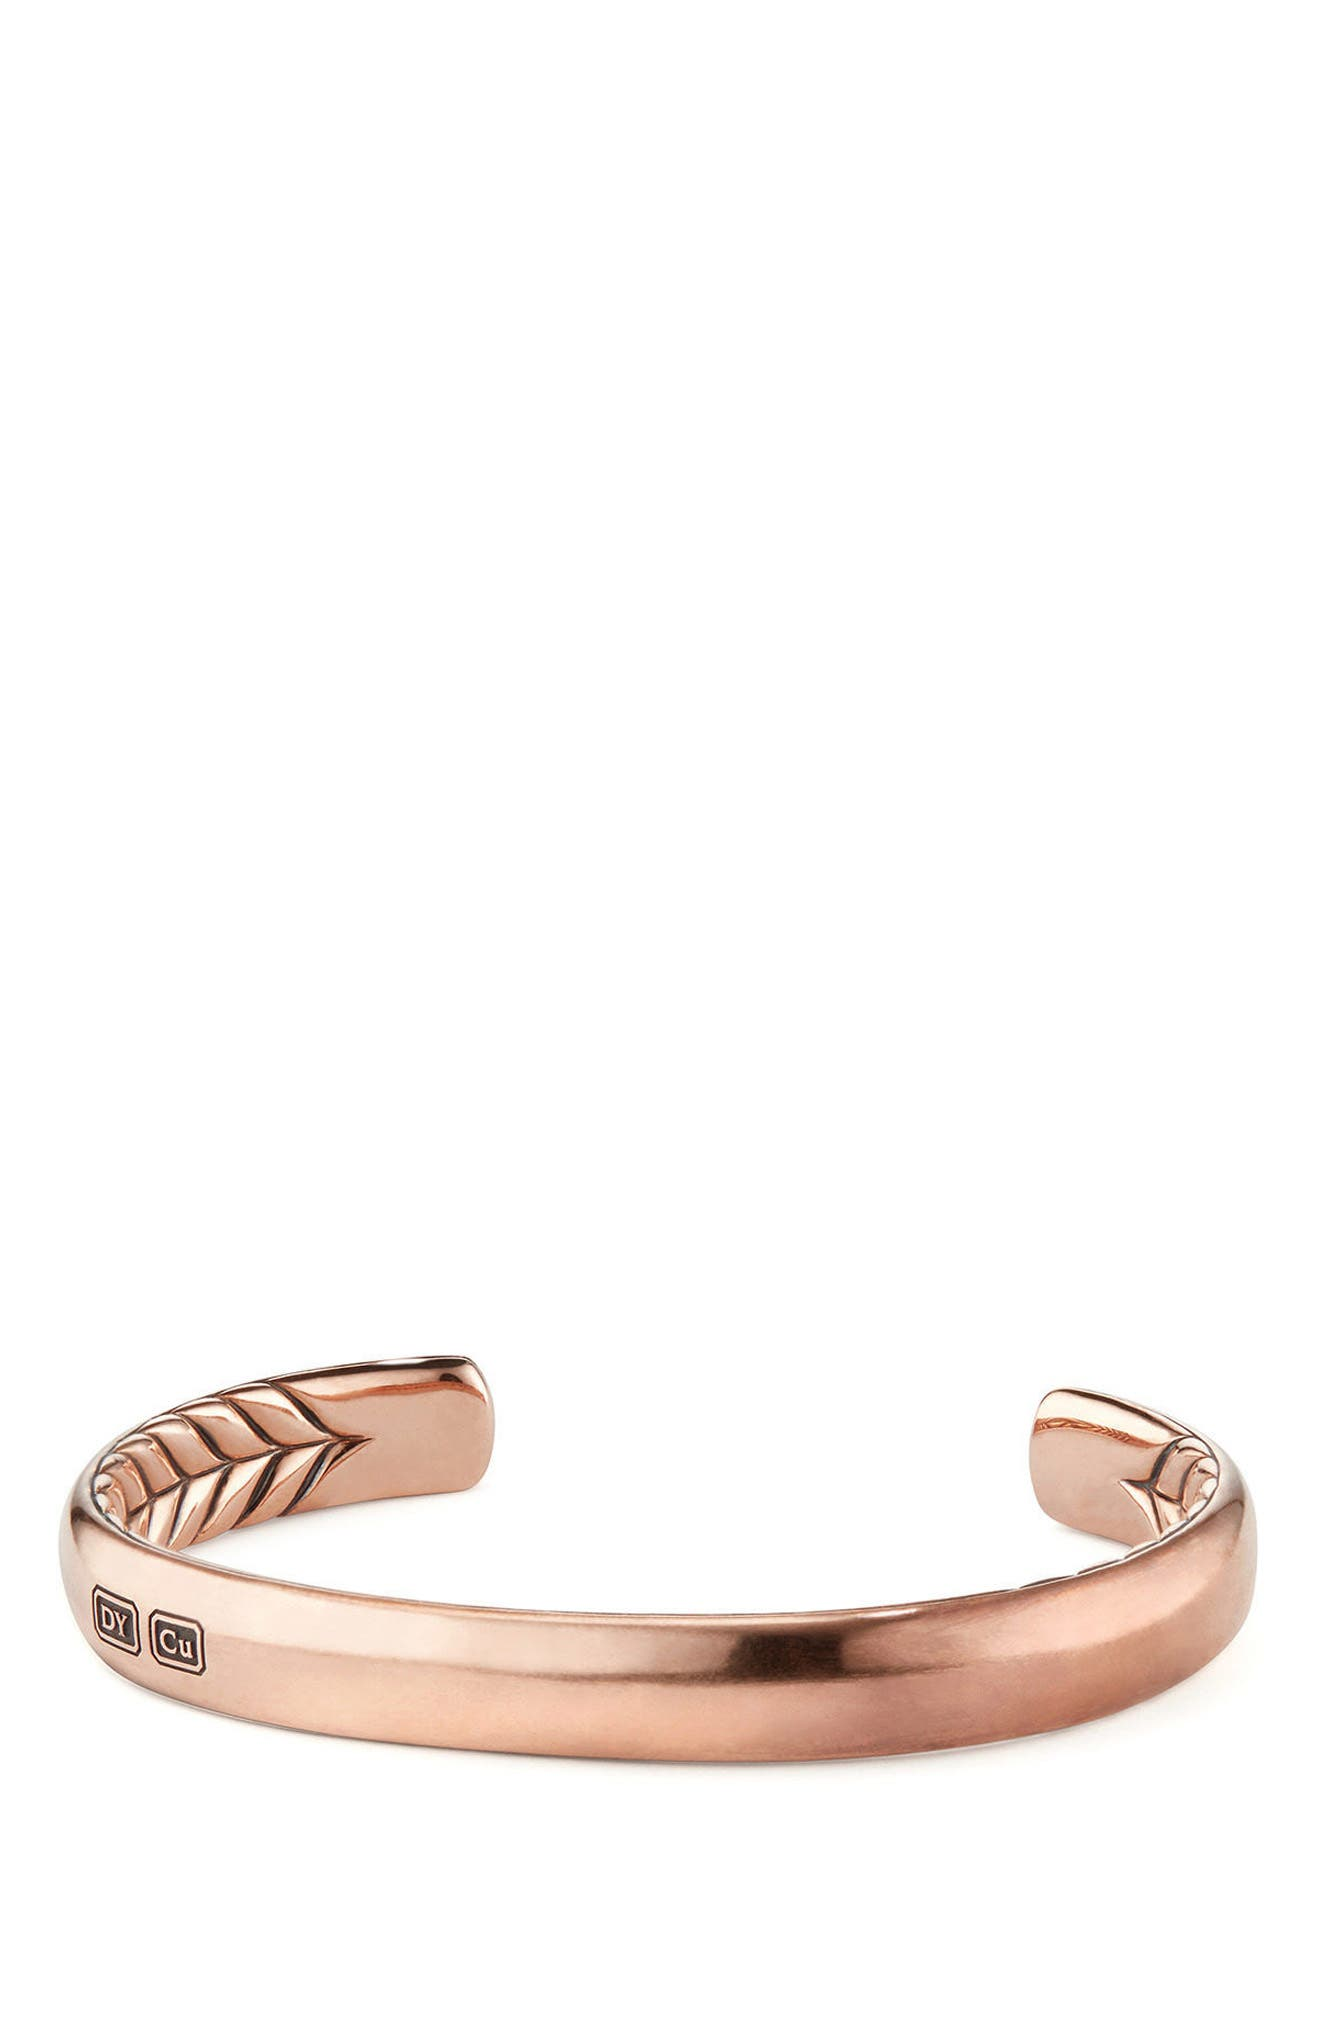 Titian Streamline Cuff Bracelet in Copper,                             Main thumbnail 1, color,                             COPPER